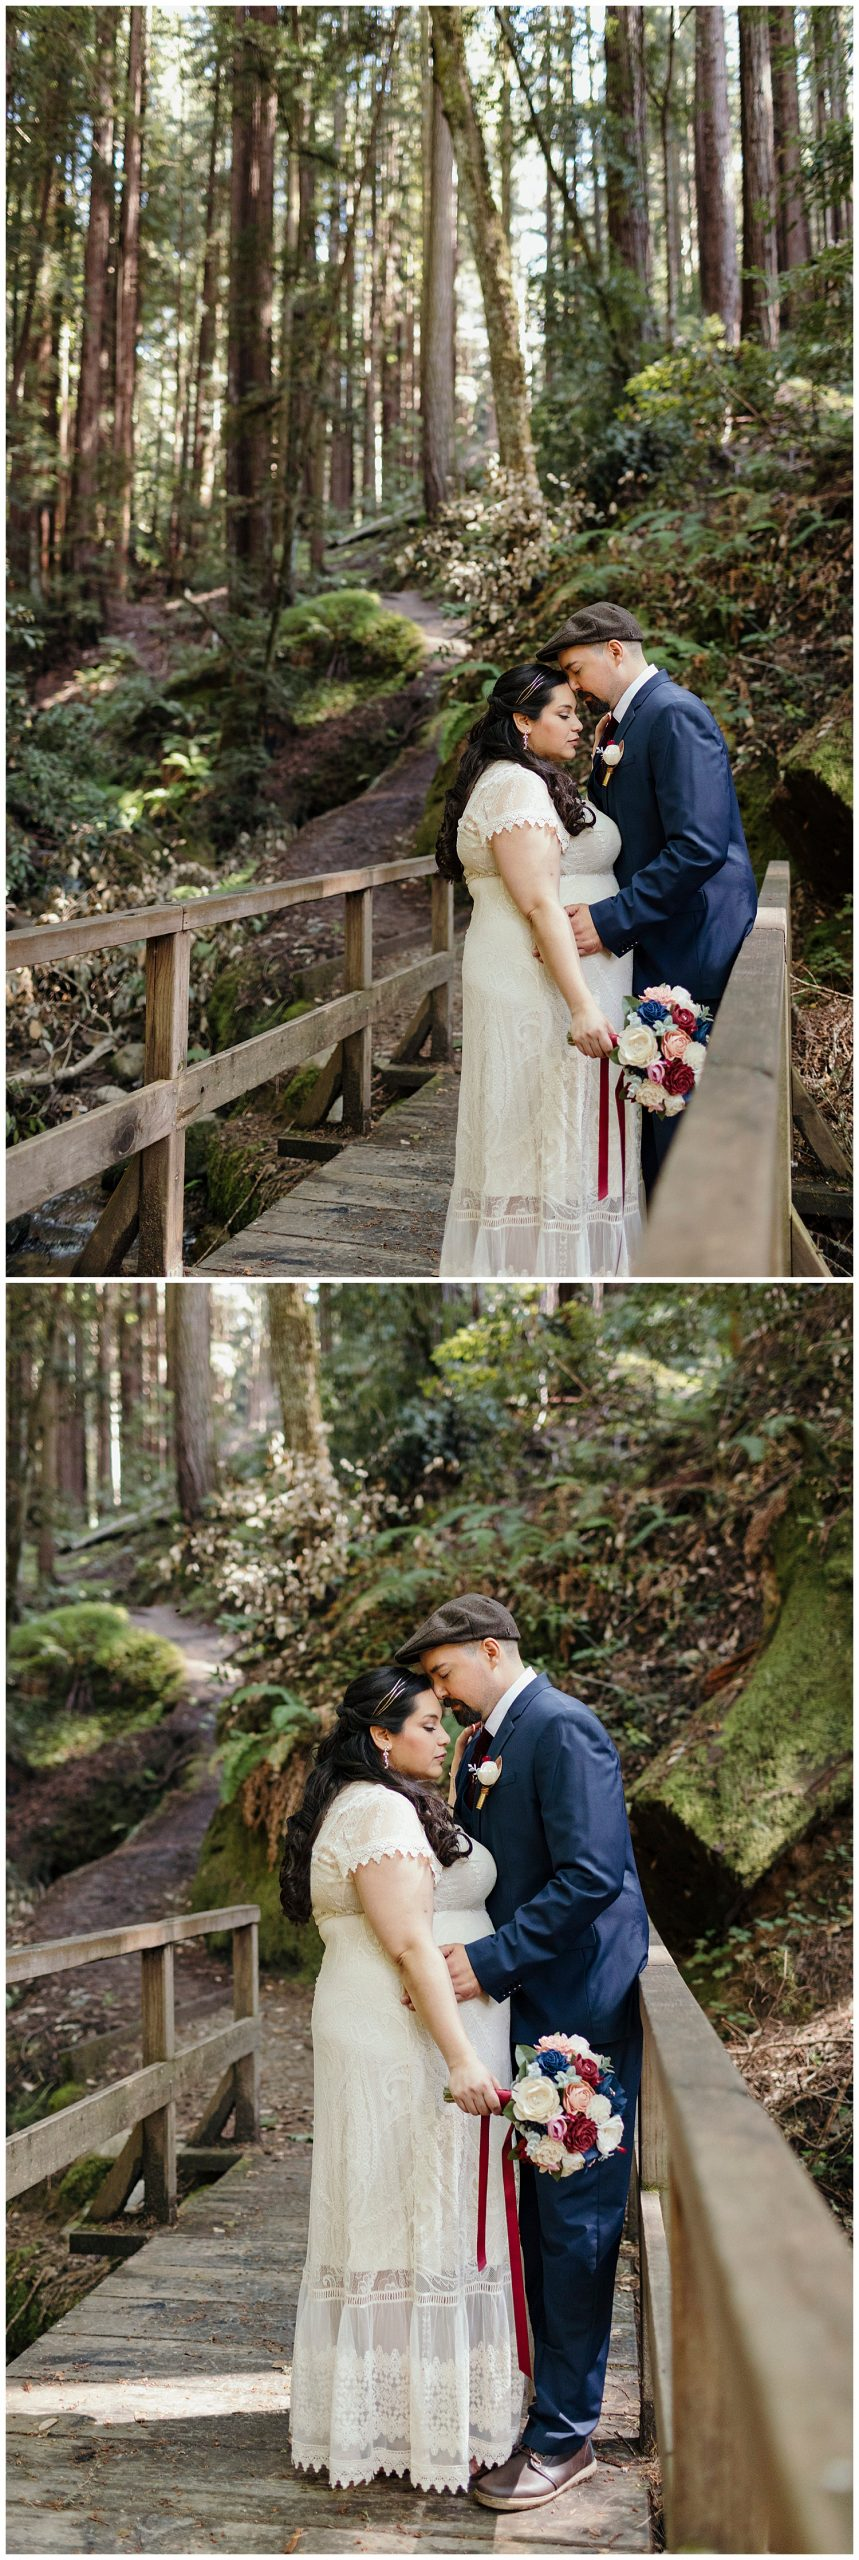 Bride and groom share moment in Henry Cowell redwoods after wedding